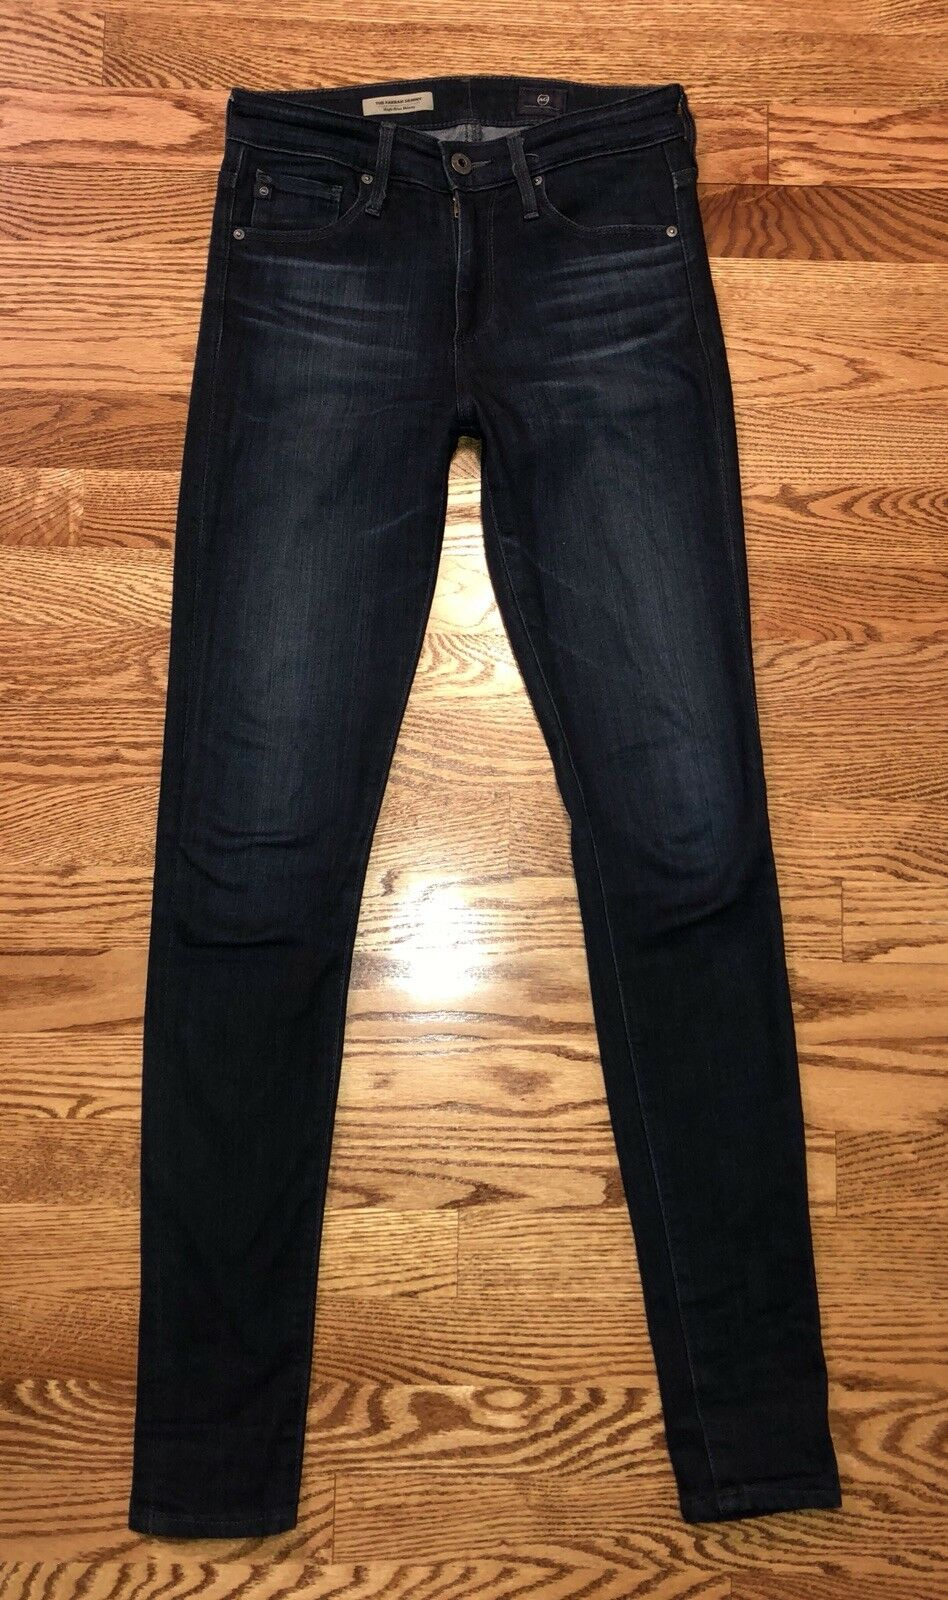 AG ADRIANO goldSCHMIED THE FARRAH HIGH RISE SKINNY JEANS 24 X 30 BRK WASH